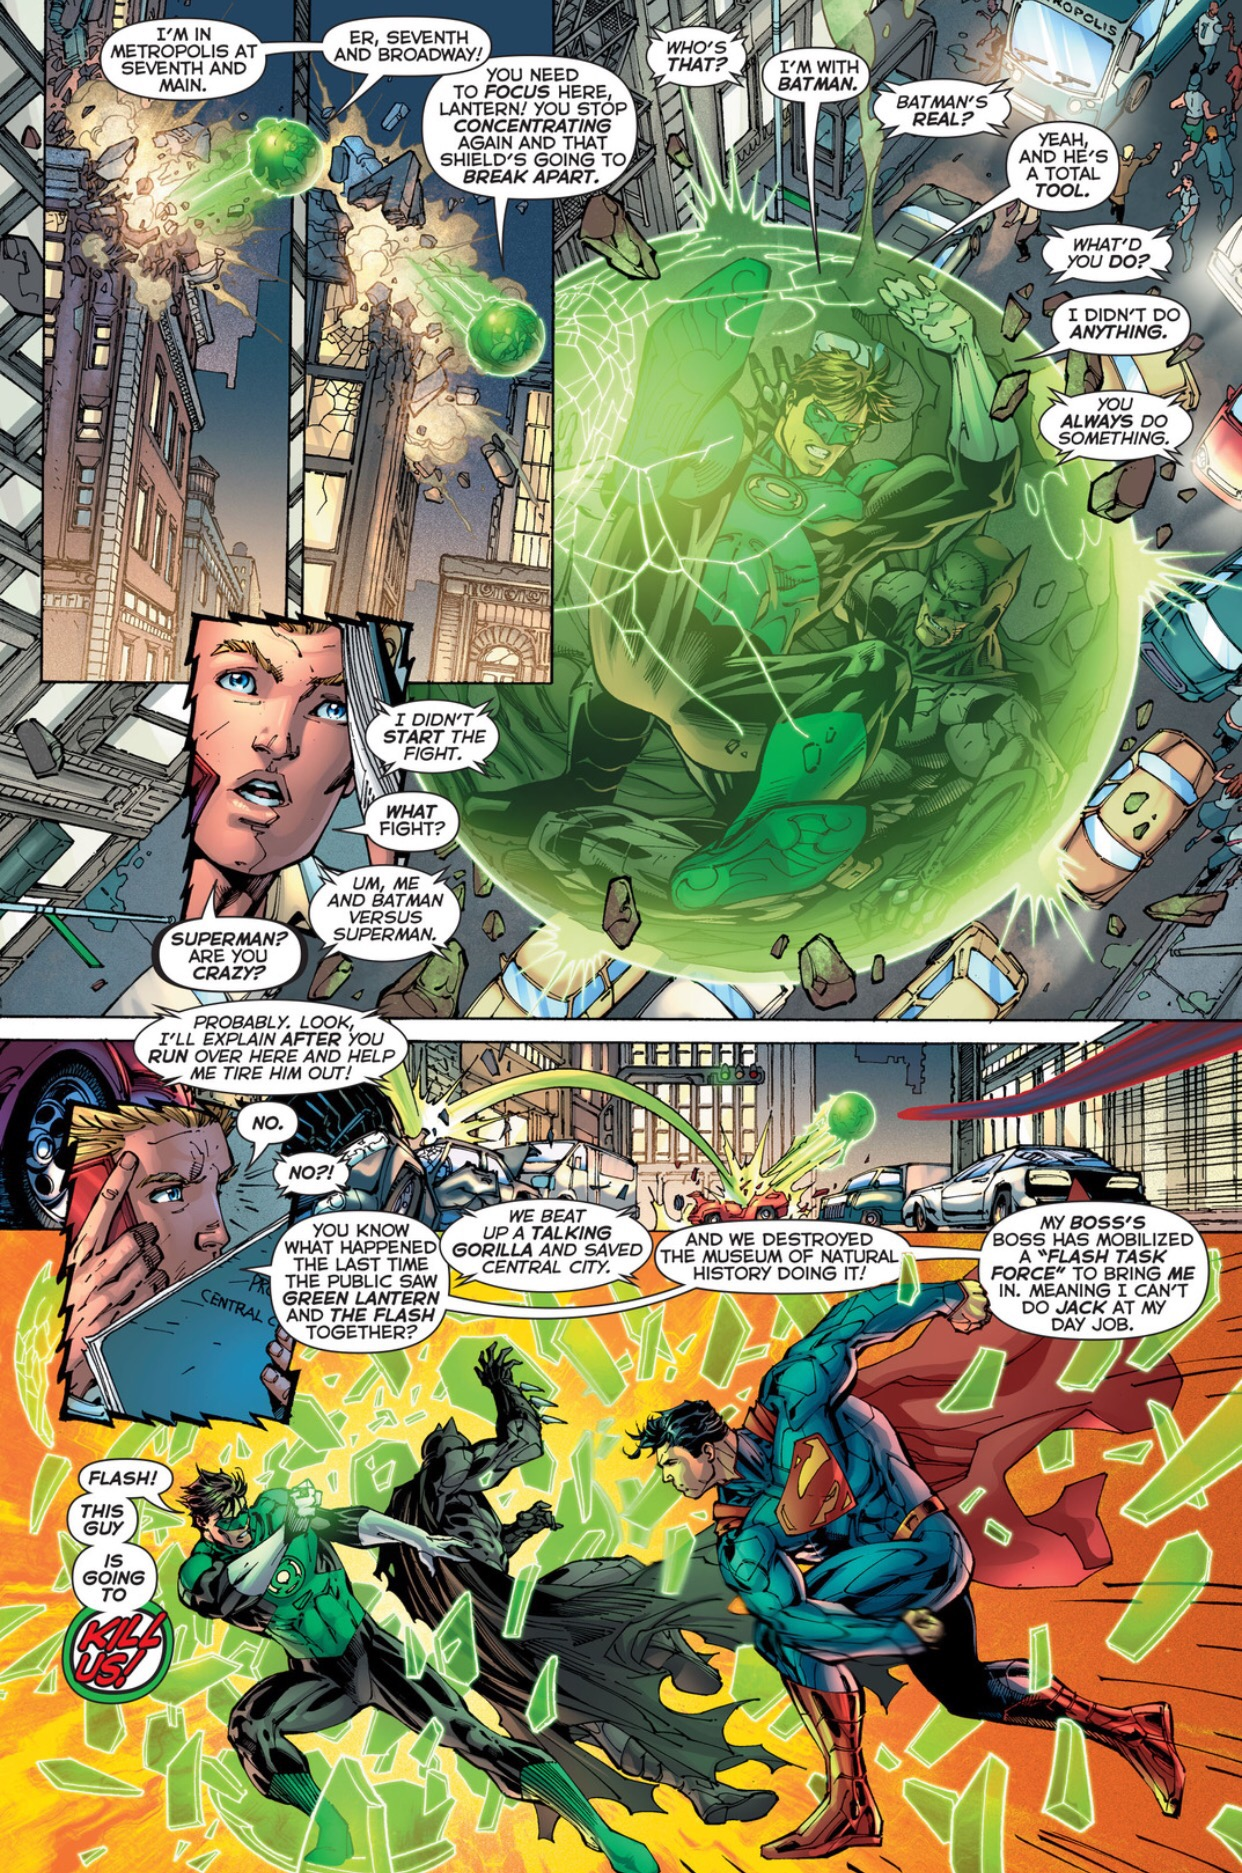 In 'Justice League #2' (2011), Superman breaks Green Lantern's spherical light construct with a punch, stunning Green Lantern and Batman.